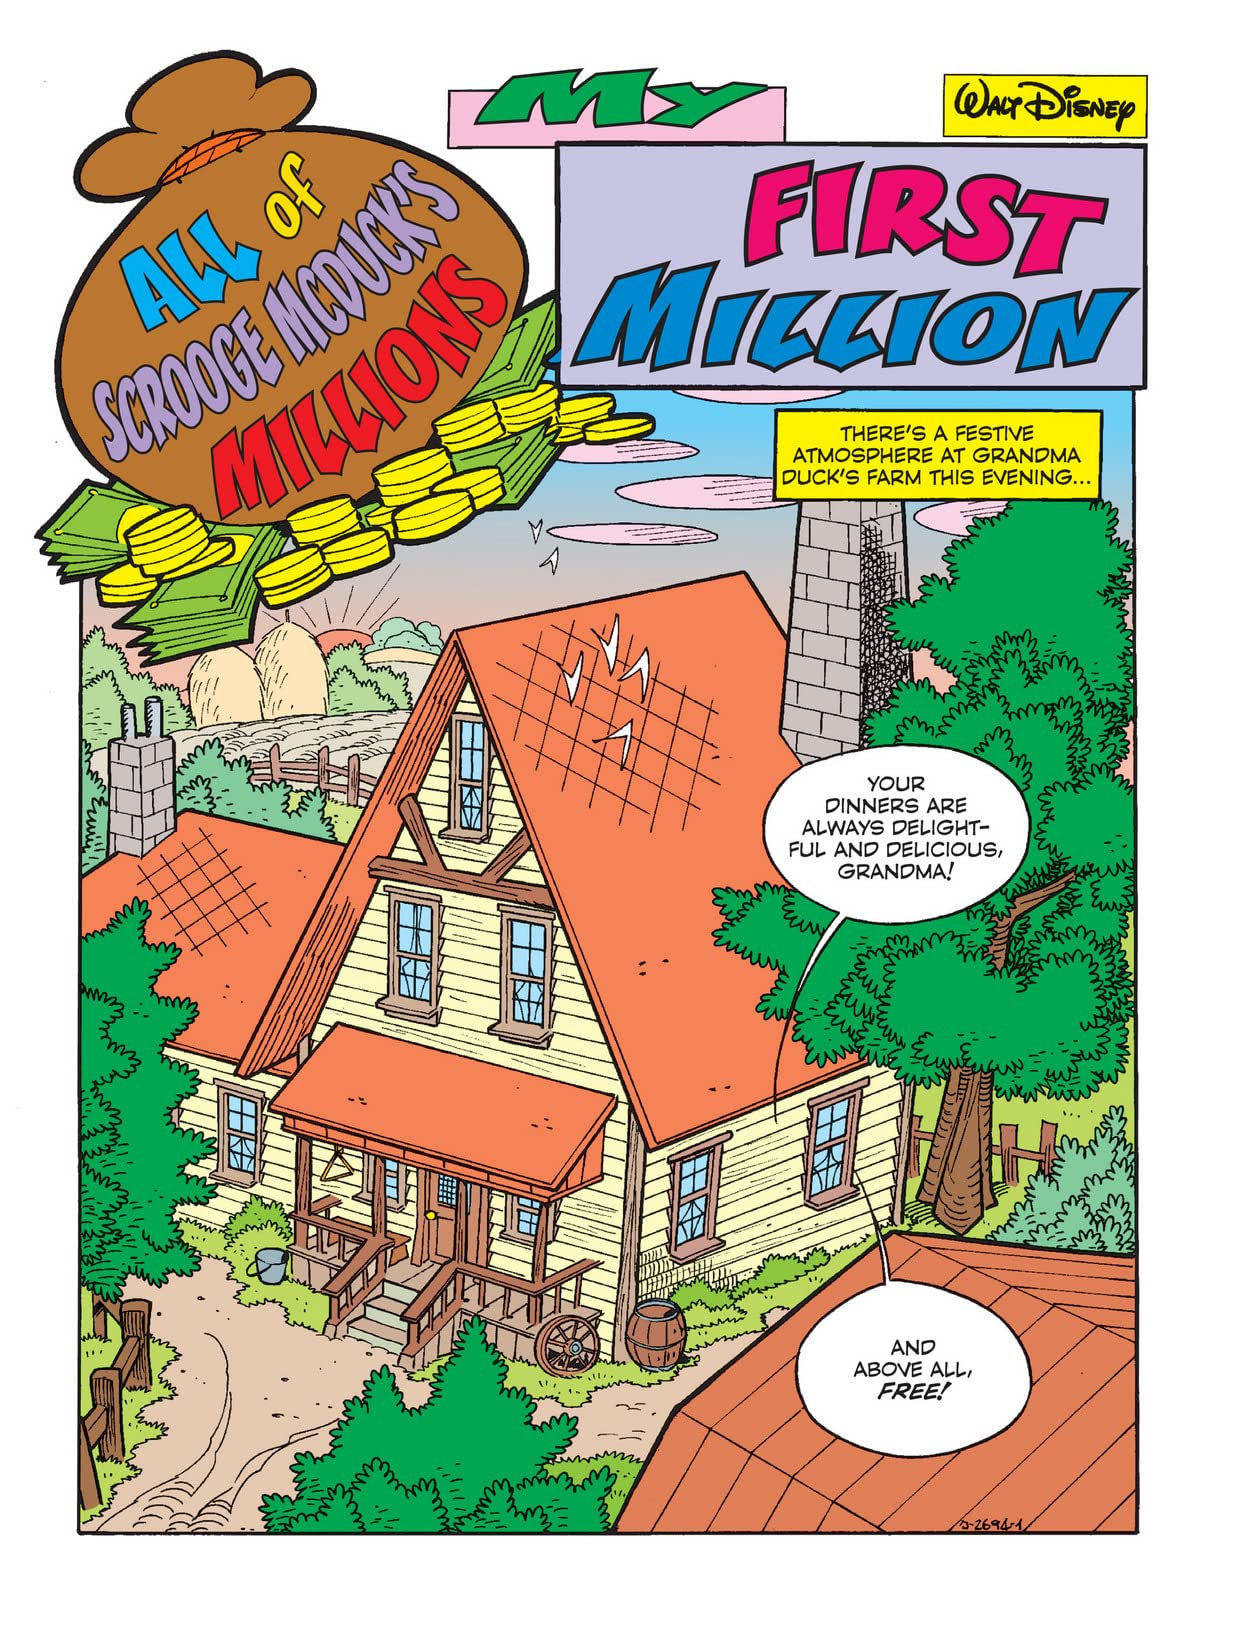 All of Scrooge McDuck's Millions #1: My First Million